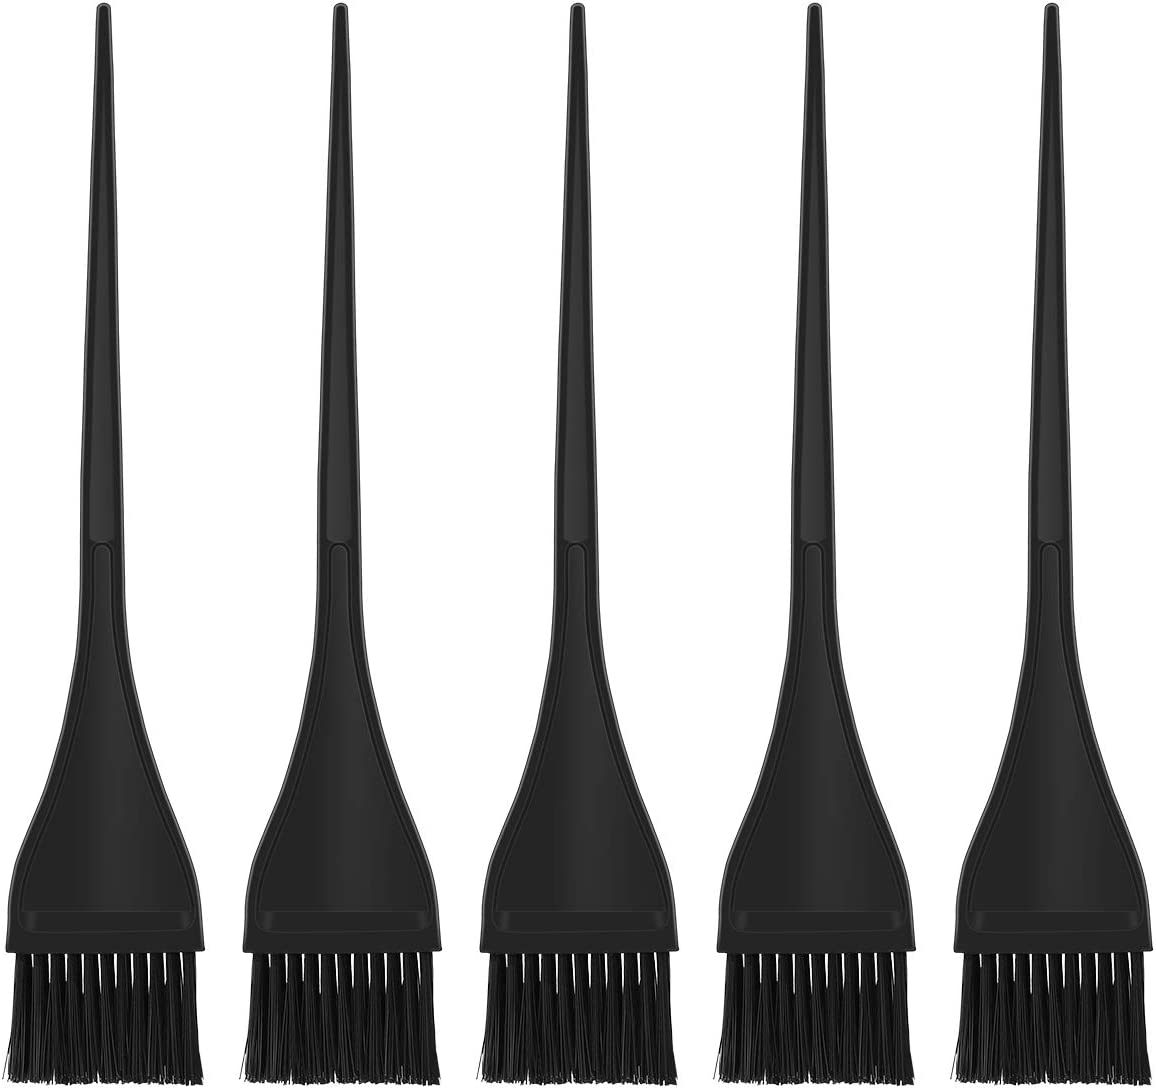 Pixnor 5 Pack Hair Dye Brushes,Handle Hair Coloring Dyeing Brush Highlight Brush Color Tint Applicator for Salon Home Use,Black: Health & Personal Care